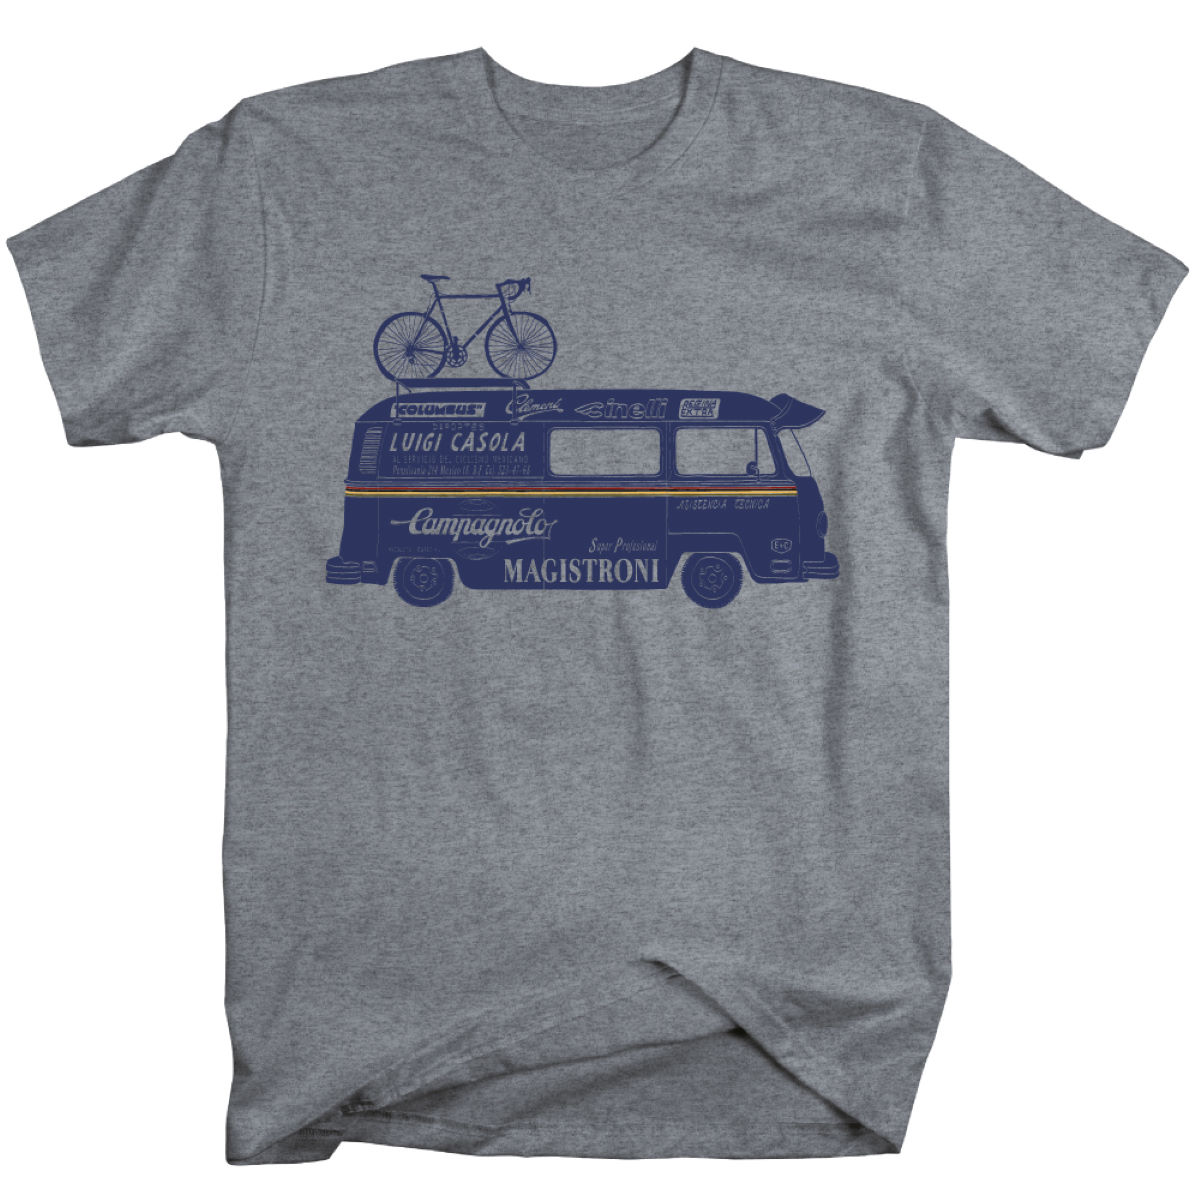 T-shirt Endurance Conspiracy Campy Van - M Heather Grey T-shirts